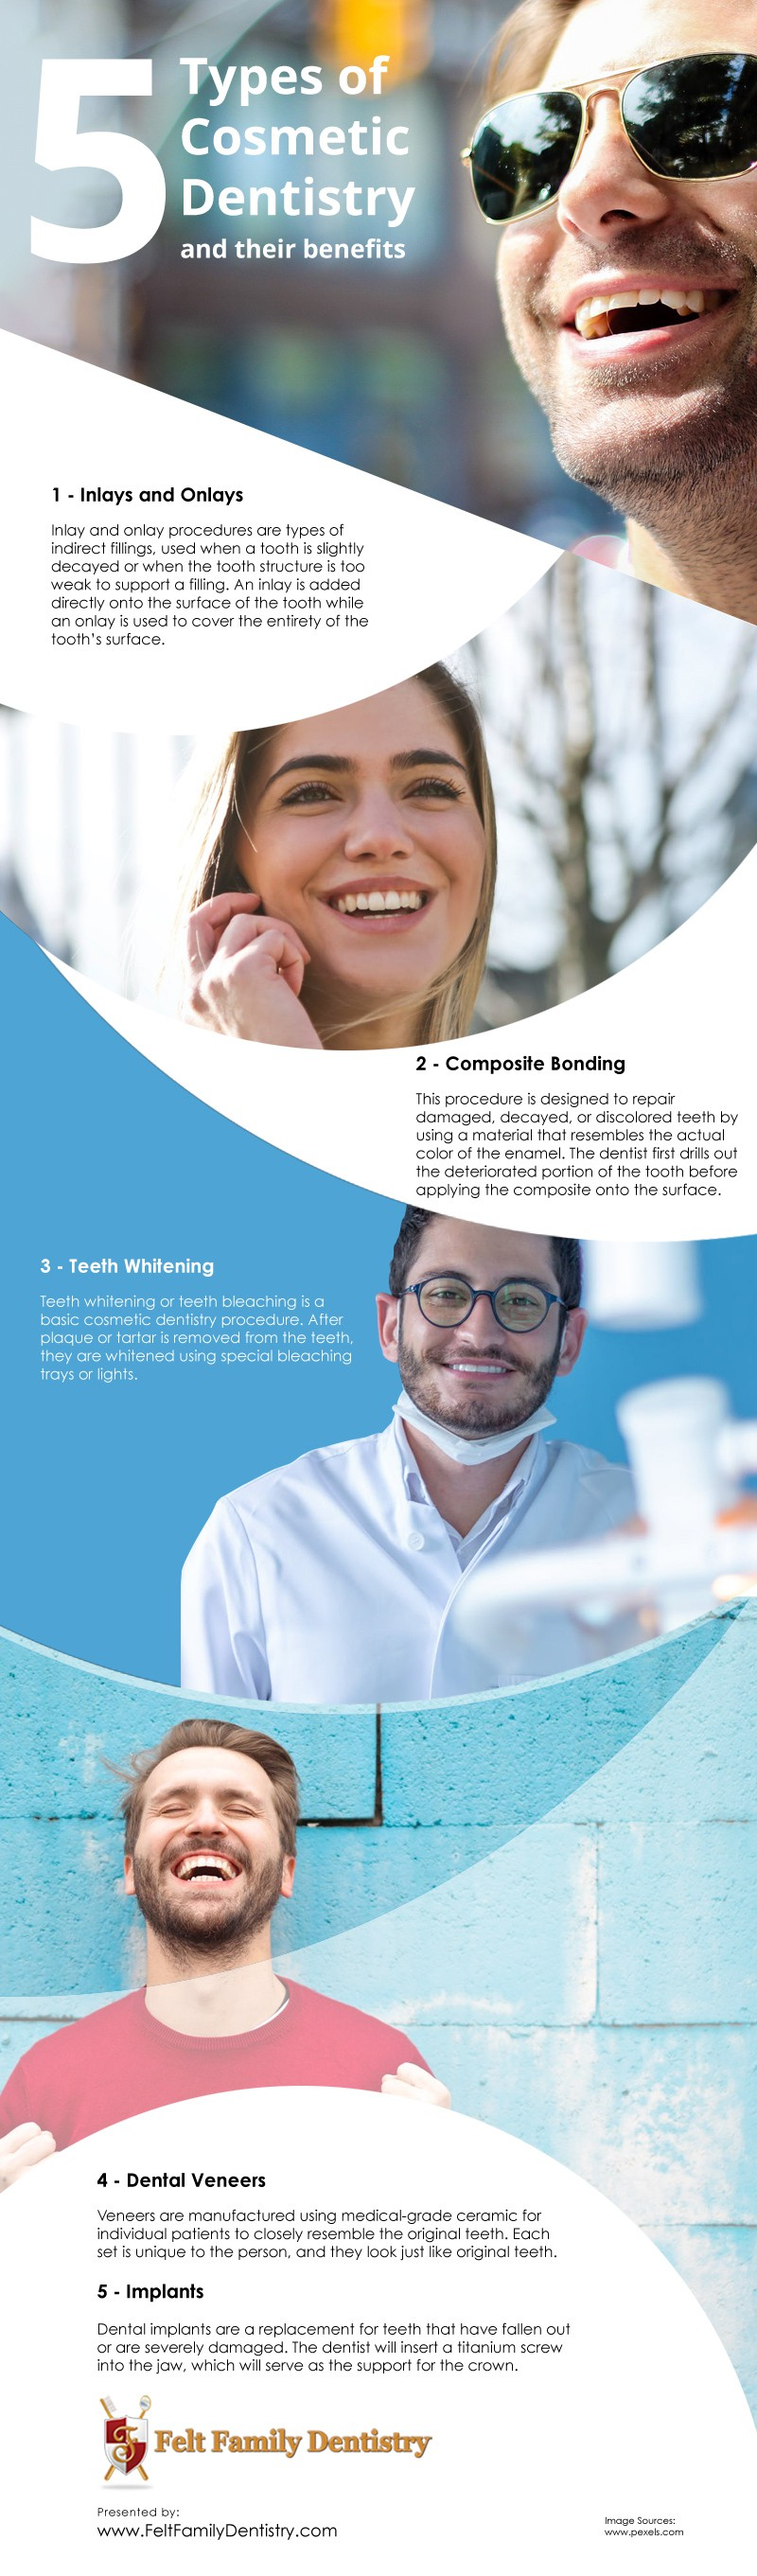 5 Types of Cosmetic Dentistry and their Benefits [infographic]